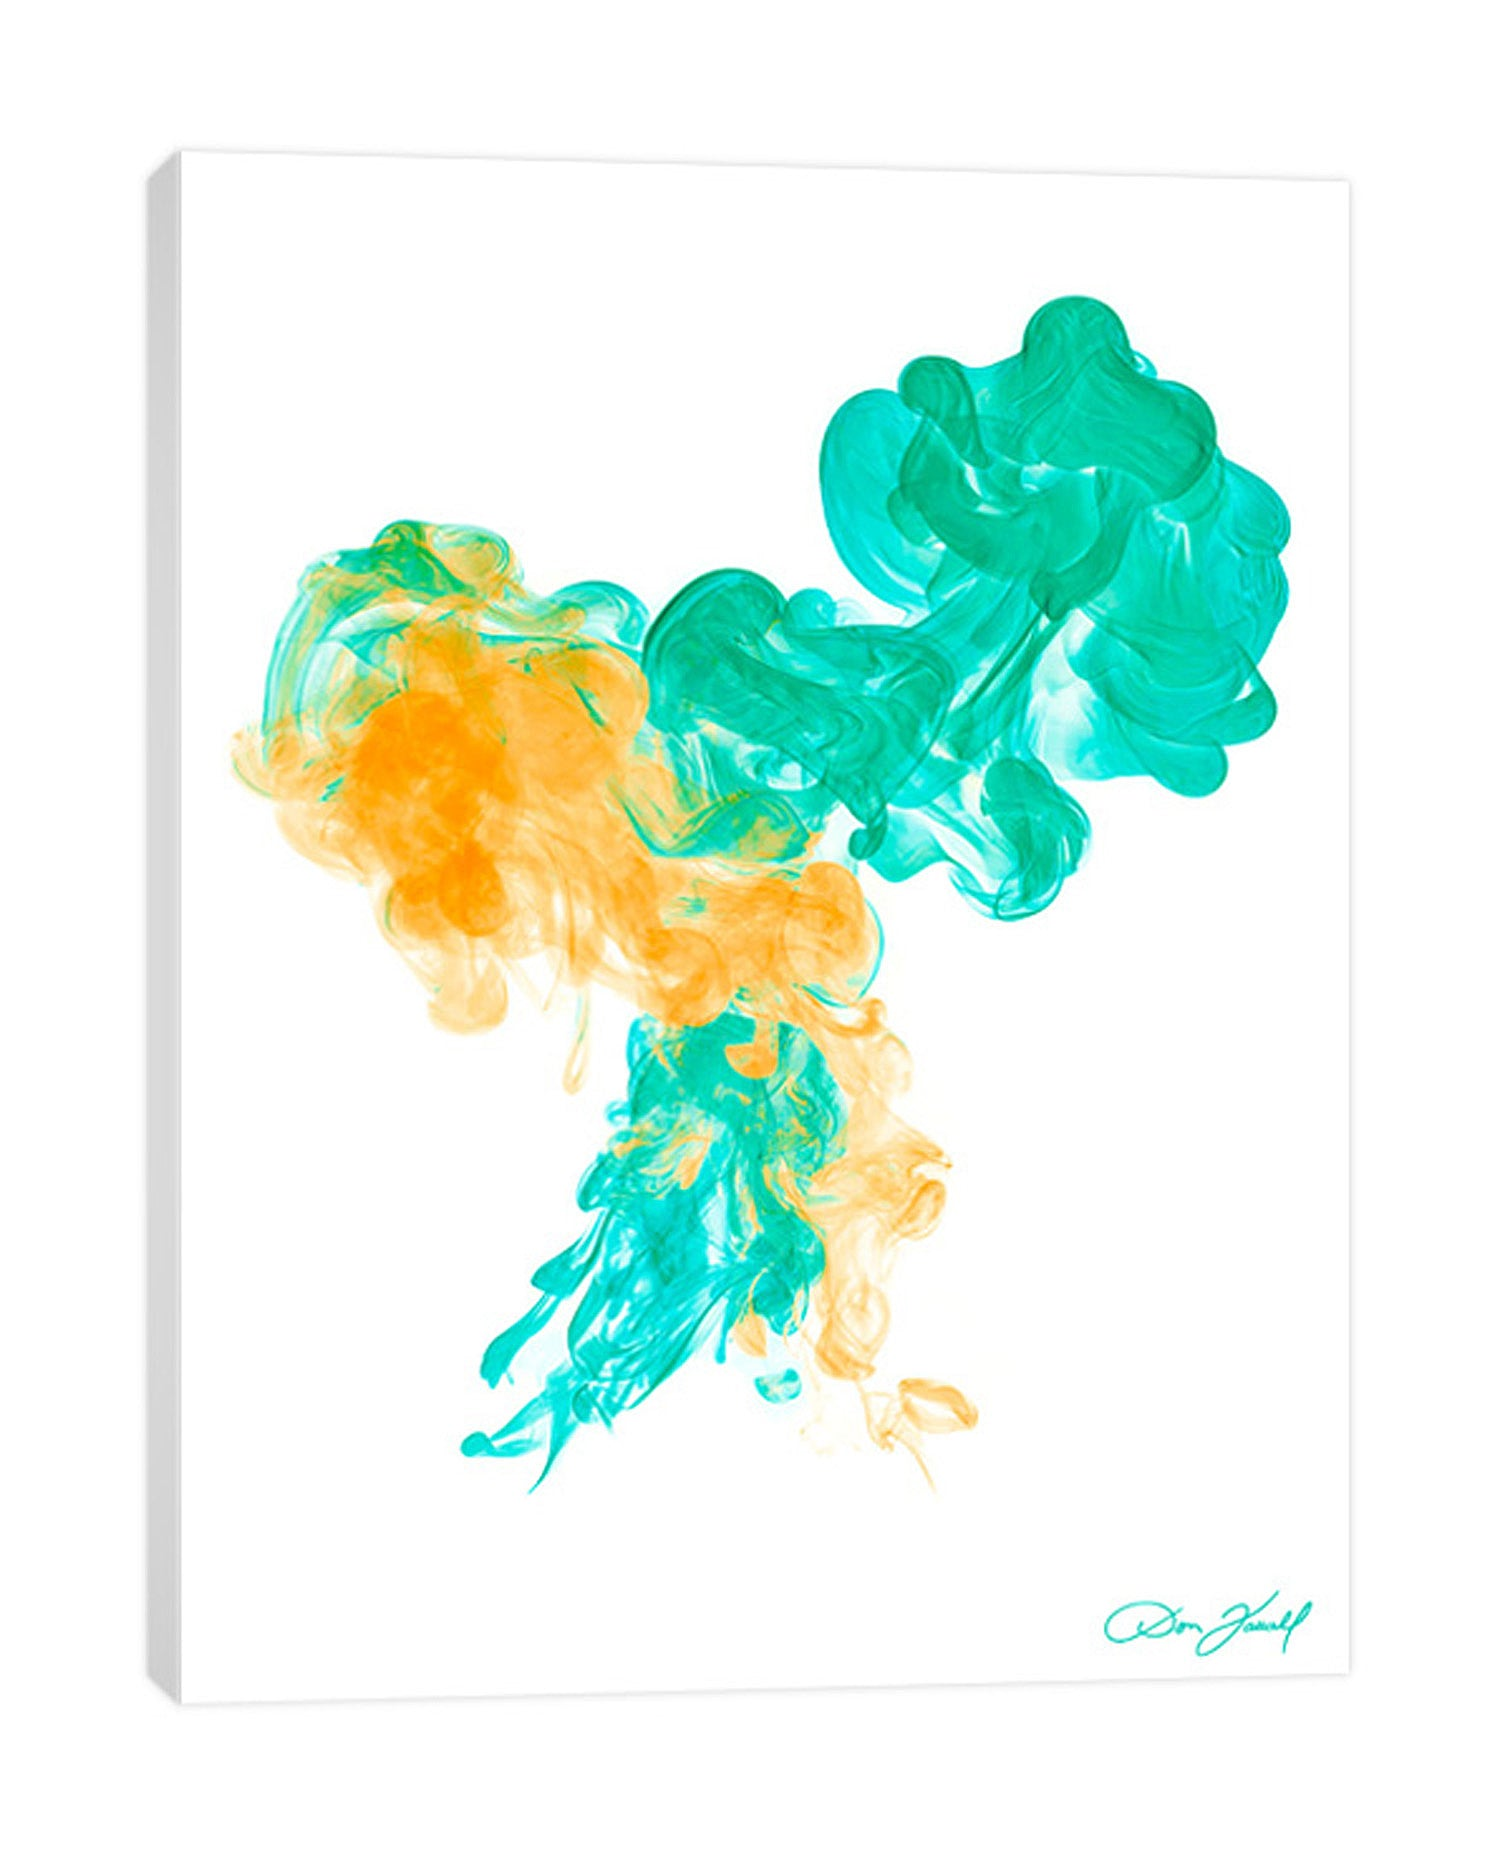 Don-Farrall,Modern & Contemporary,Abstract,absrtact,smoke,yellow,green,smokes,Teal Blue,Red,Nude White,White